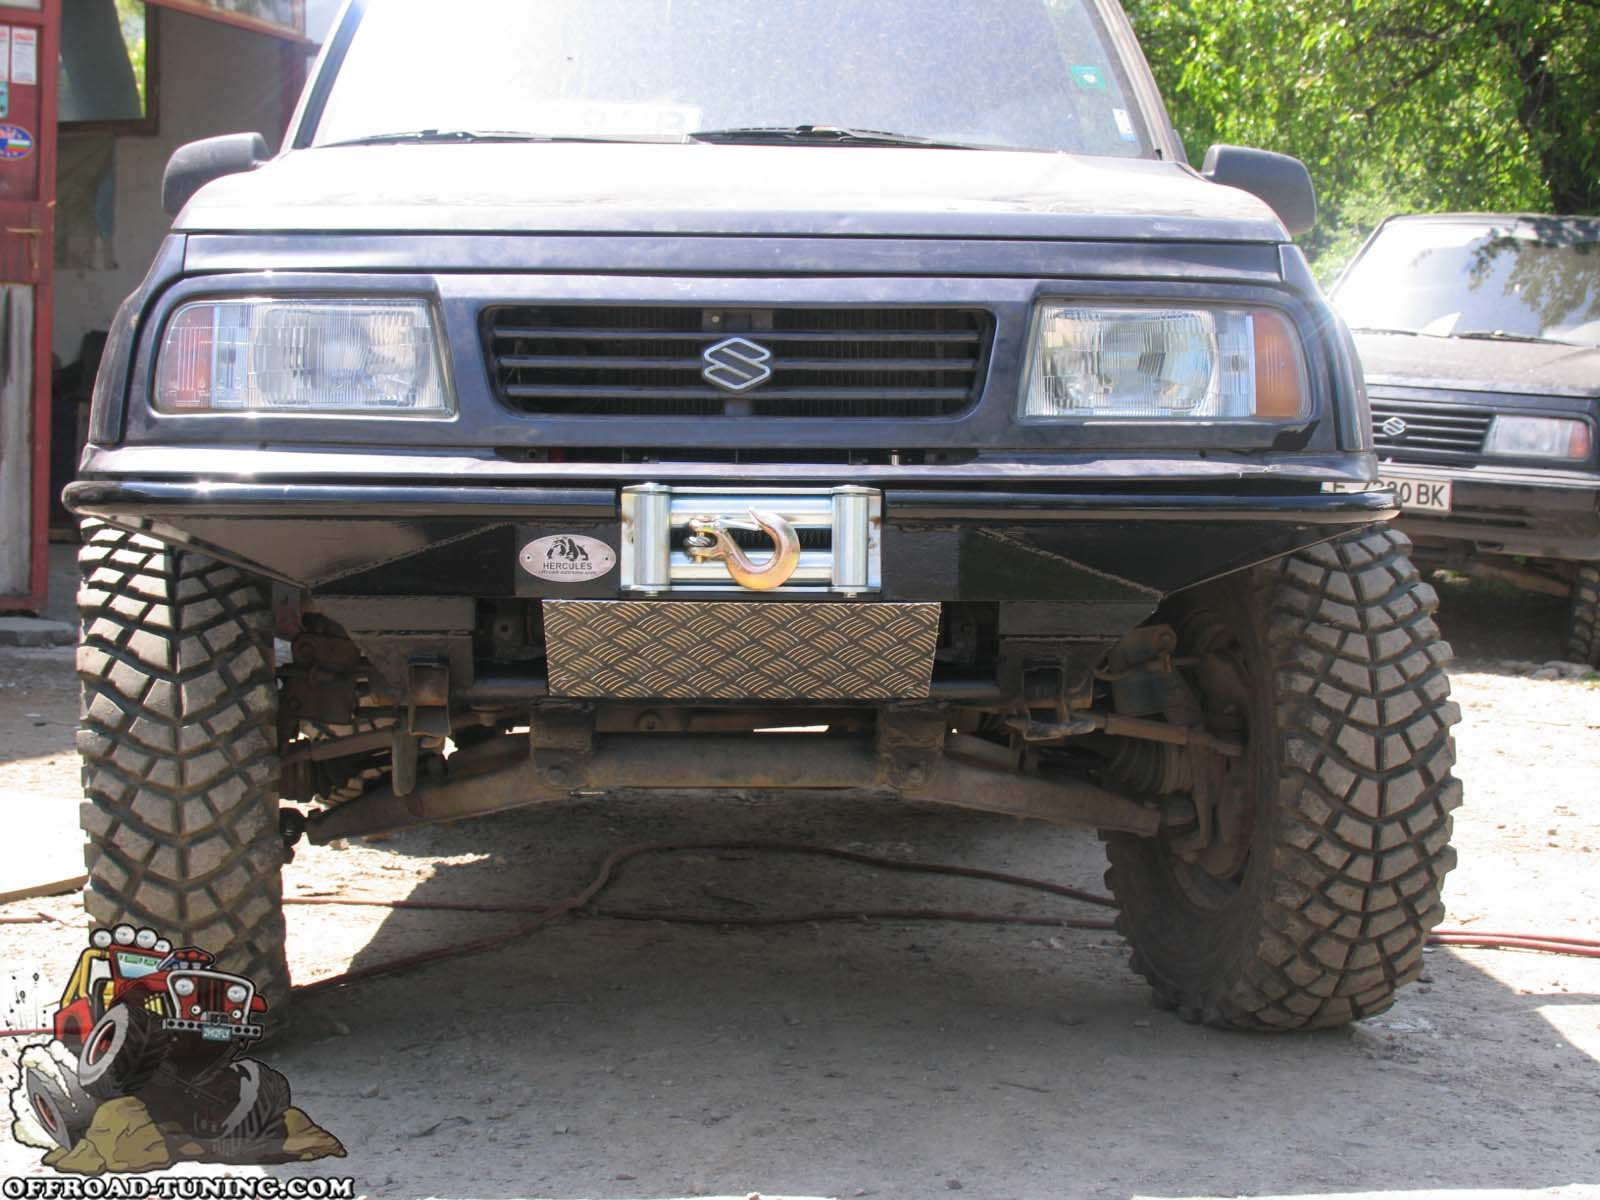 Offroad Tuning Com